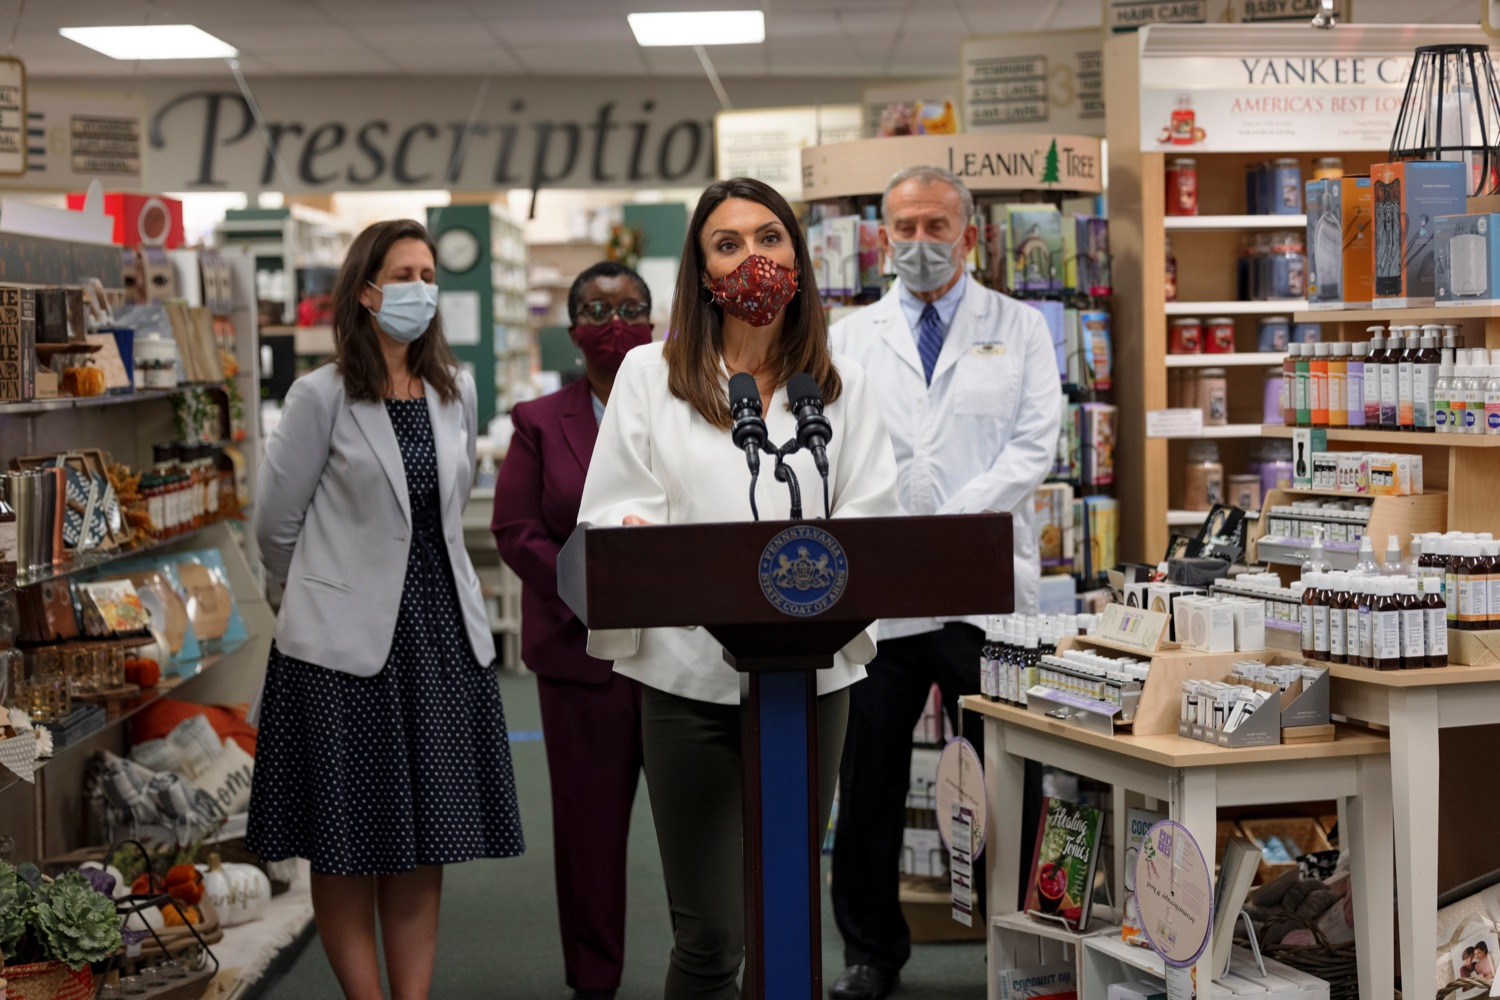 """<a href=""""https://filesource.wostreaming.net/commonwealthofpa/photo/19144_DOH_BoosterShots_NK_009.jpg"""" target=""""_blank"""">⇣Download Photo<br></a>Acting Secretary of Health Alison Beam speaks during a press conference, which discussed an order to ensure that vaccine providers are prepared to start COVID-19 booster shots as soon as the Centers for Disease Control and Prevention (CDC) issues the necessary federal guidance, in Hershey Pharmacy in Hershey on Tuesday, September 21, 2021. Pennsylvania is well prepared to start providing vaccine booster shots just as soon as the CDC provides the approval and guidelines on who can get it, Beam said. Vaccine providers  especially pharmacies  have already done a tremendous job administering more than 12 million vaccines across the state. Now they are ready to get booster shots to people as quickly and efficiently as possible."""